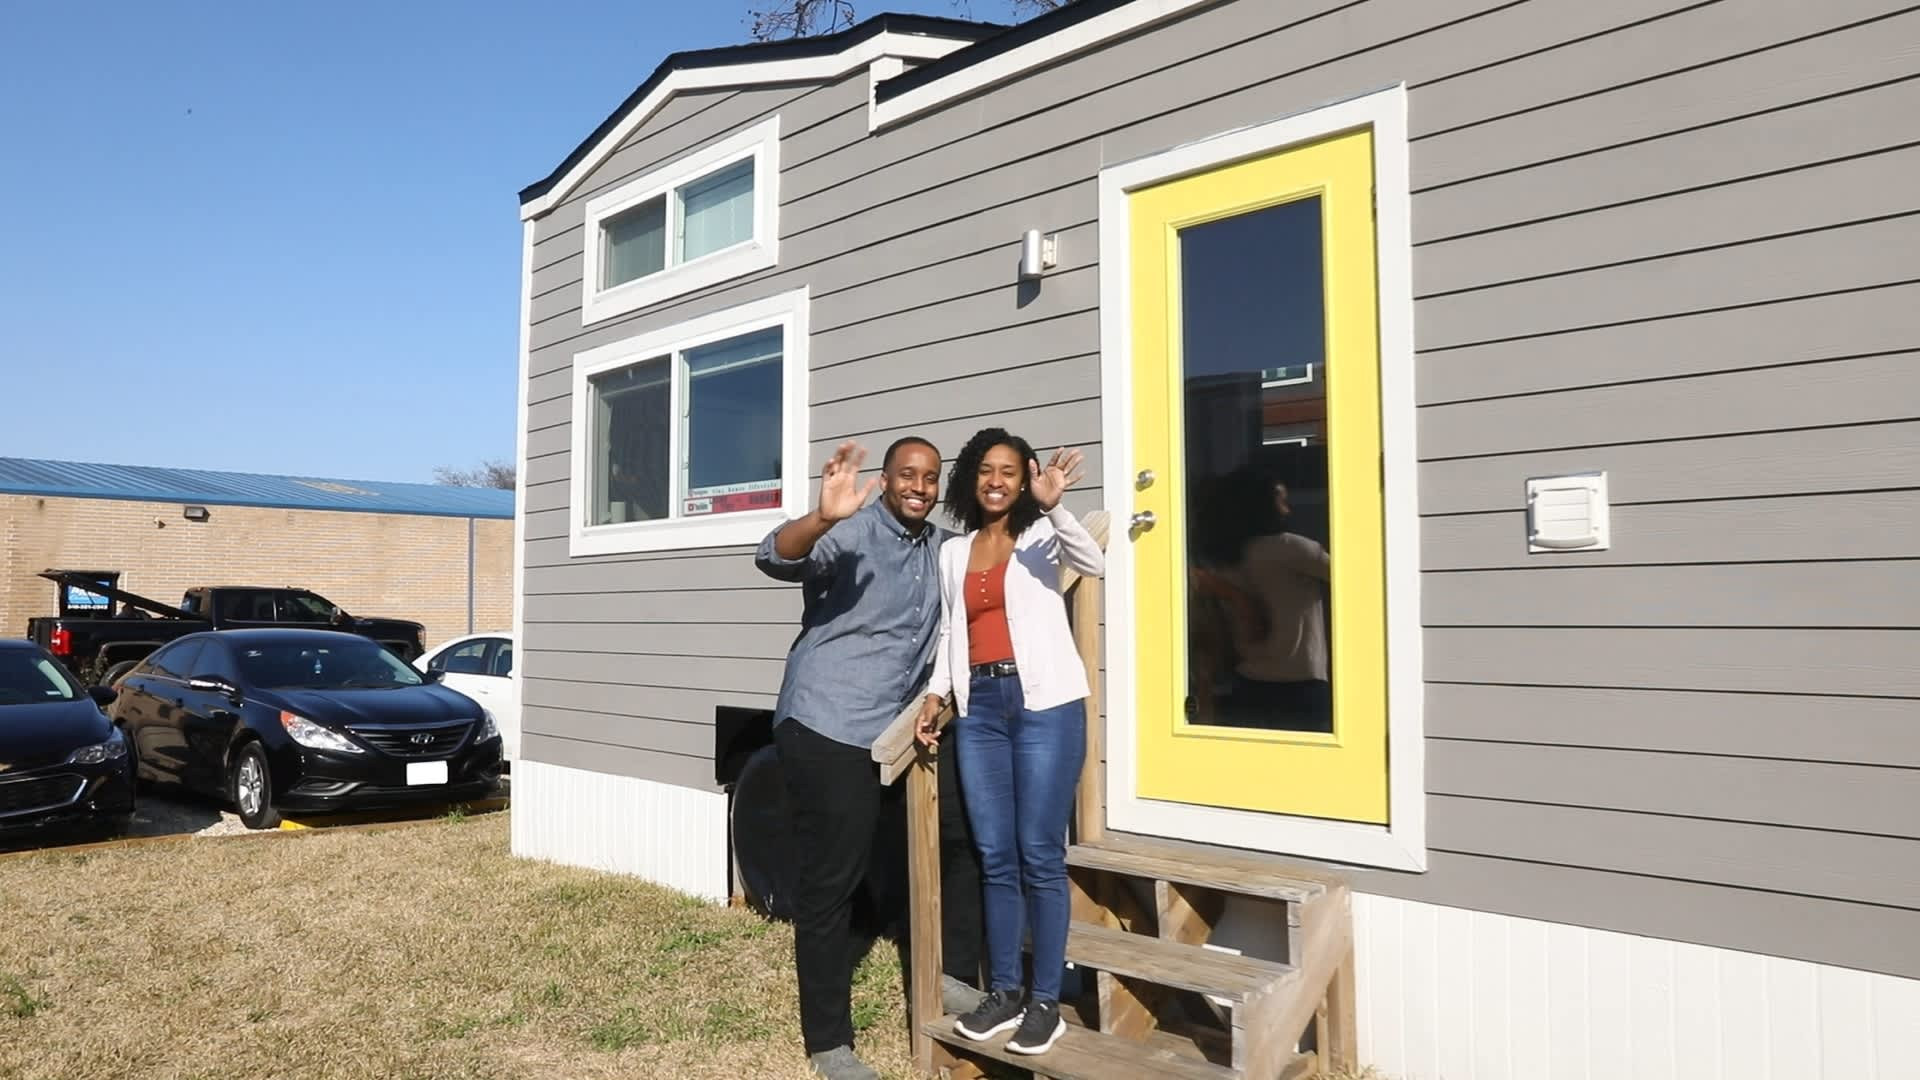 Marek and Kothney-Issa in front of their home in Lake Dallas, Texas. The couple live in a tiny home community.